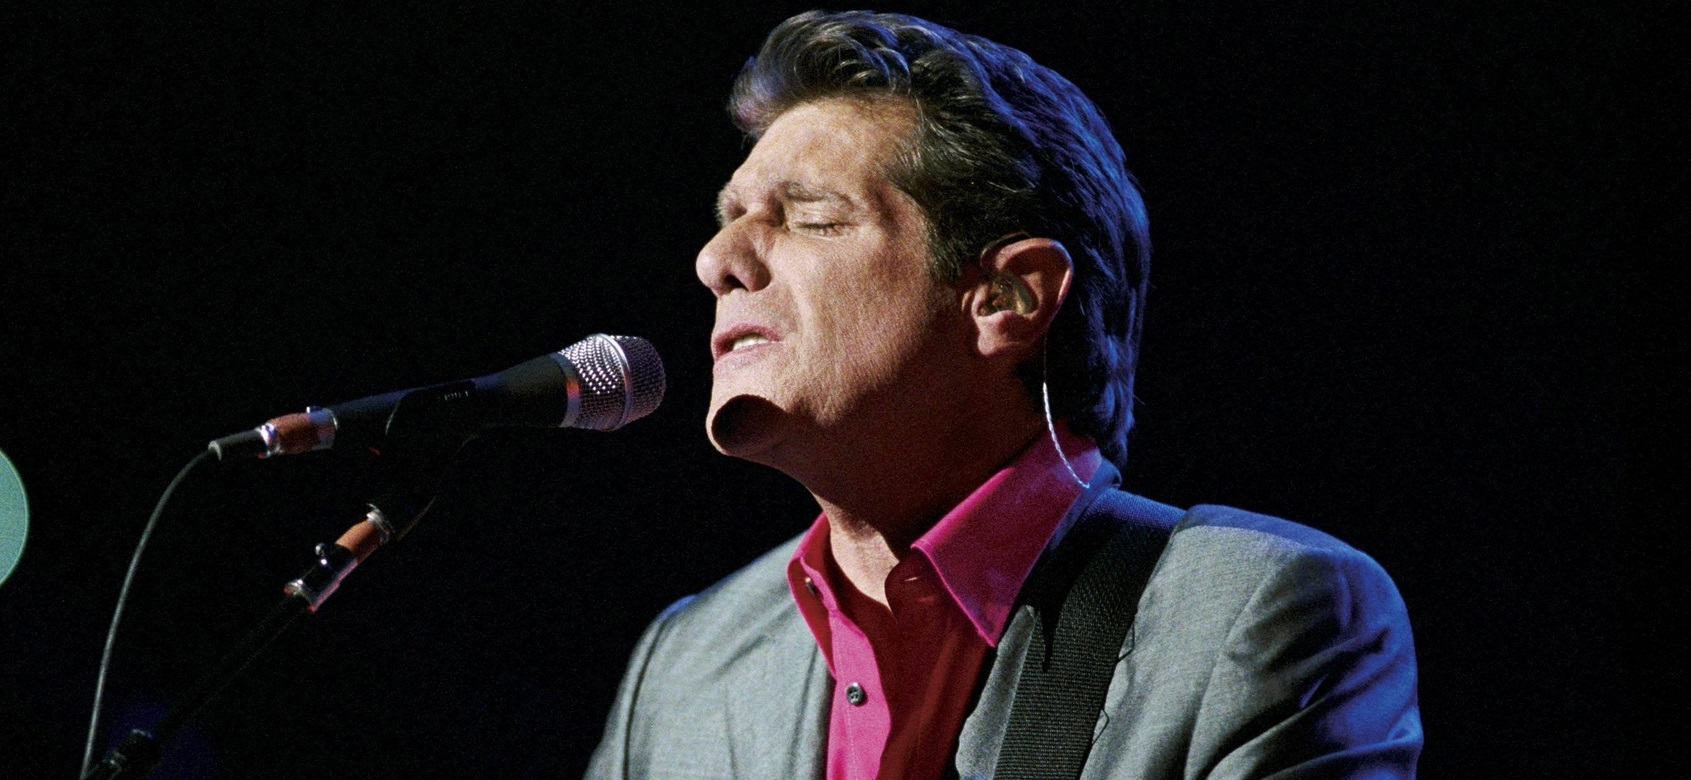 Eagles guitarist Glenn Frey dead at 67